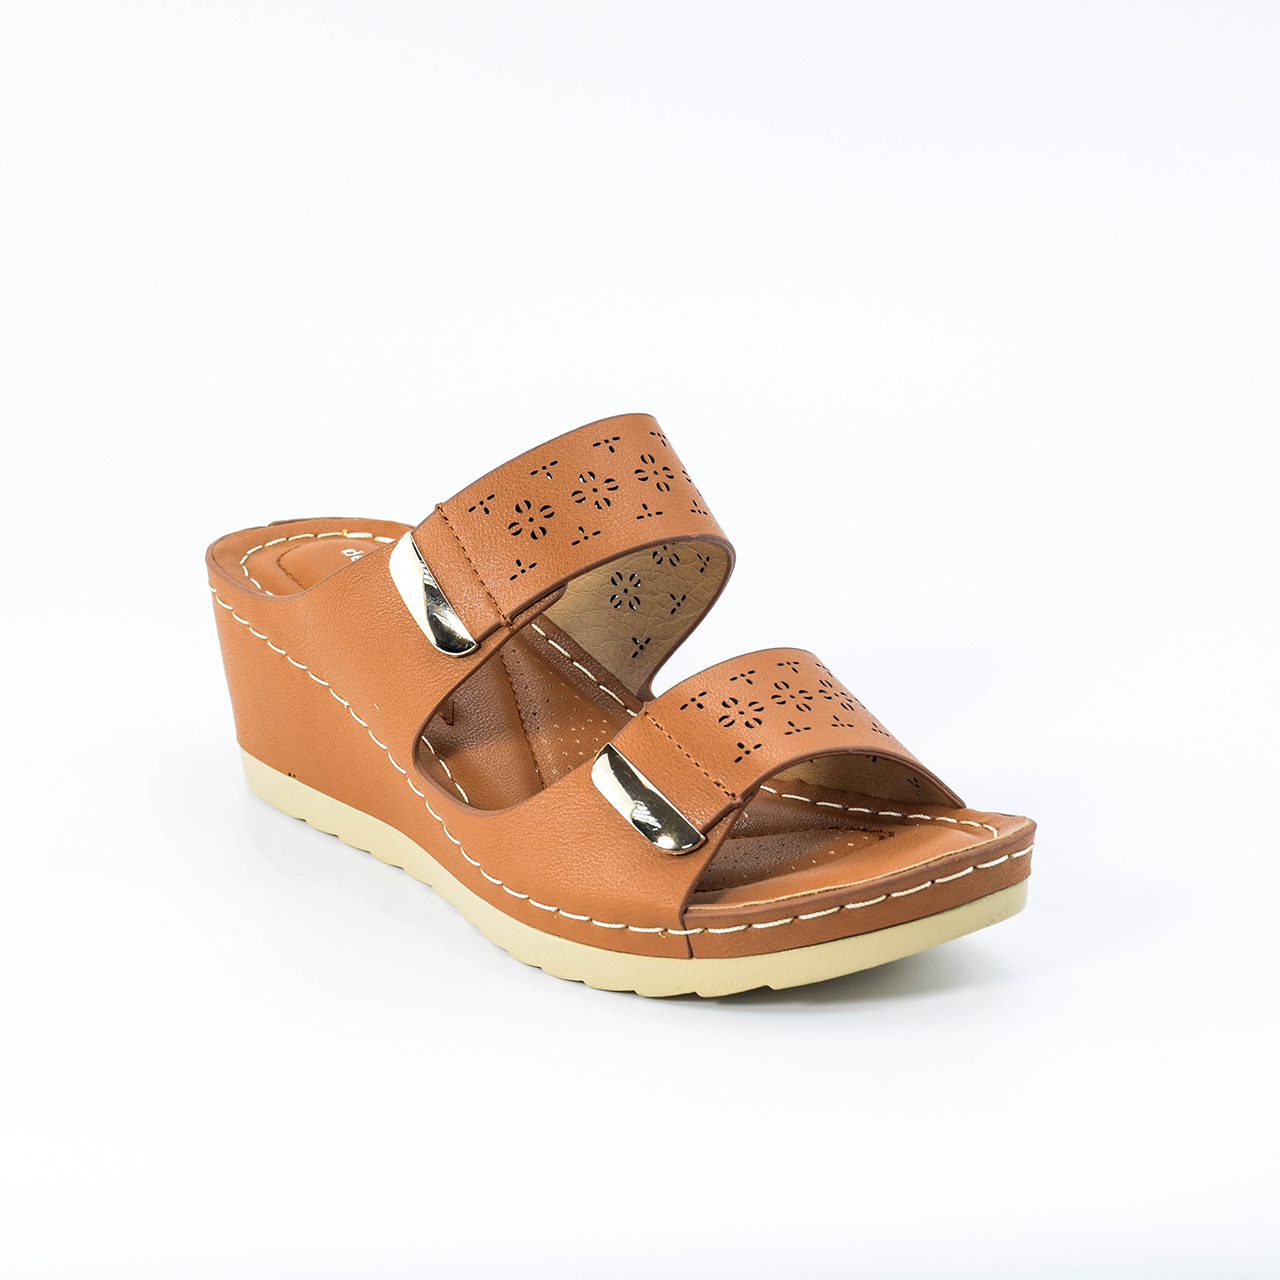 Keyla Wedges in Camel